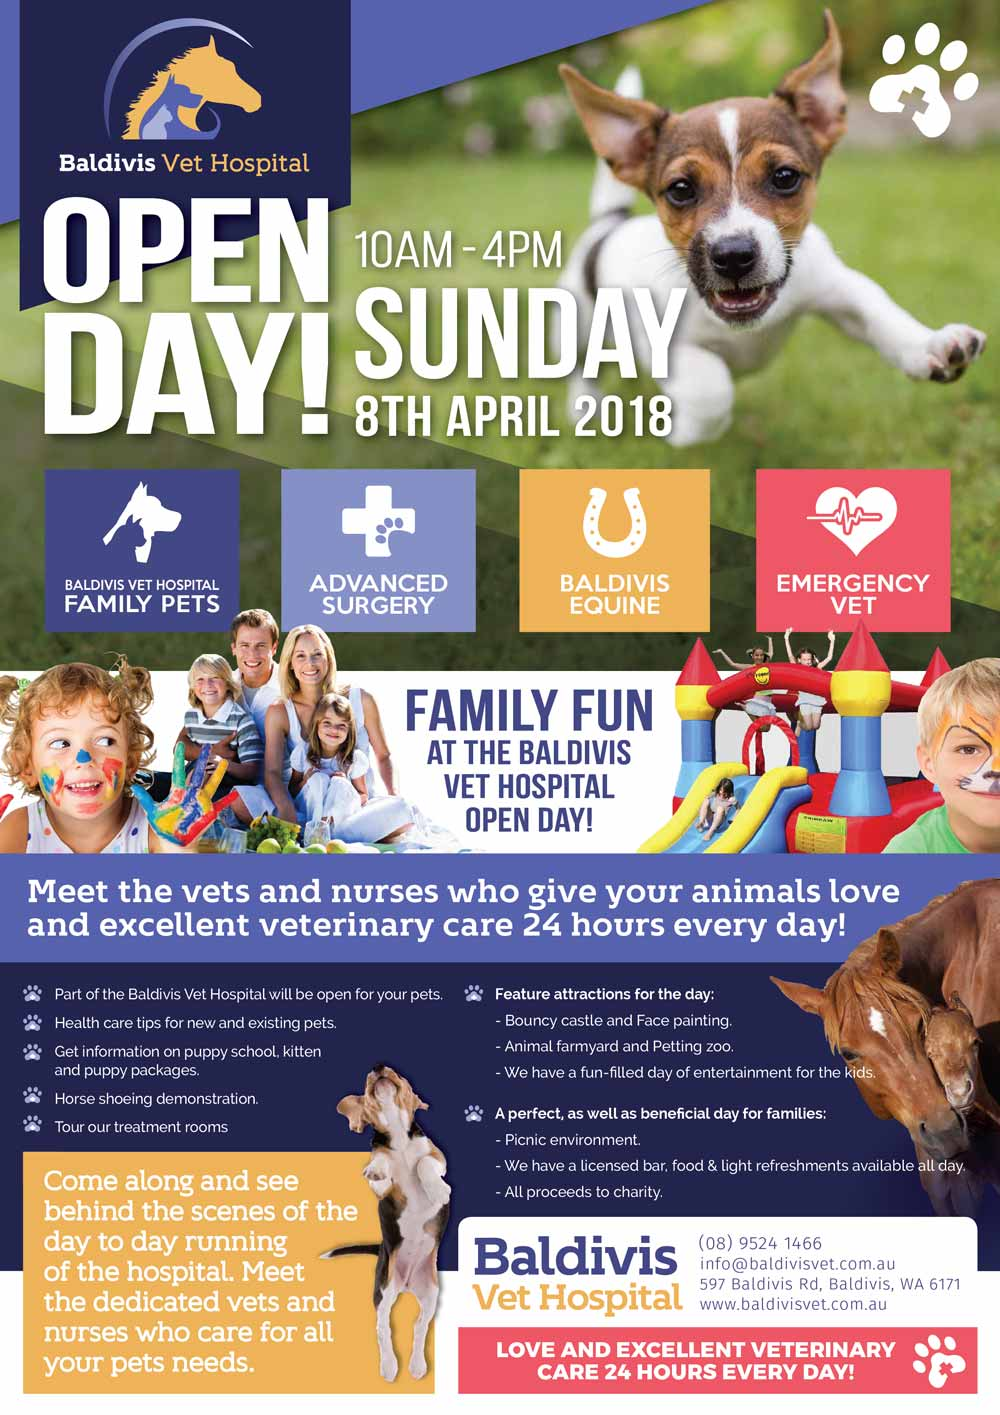 bvh-open-day-flyer-8th-april-2018-front